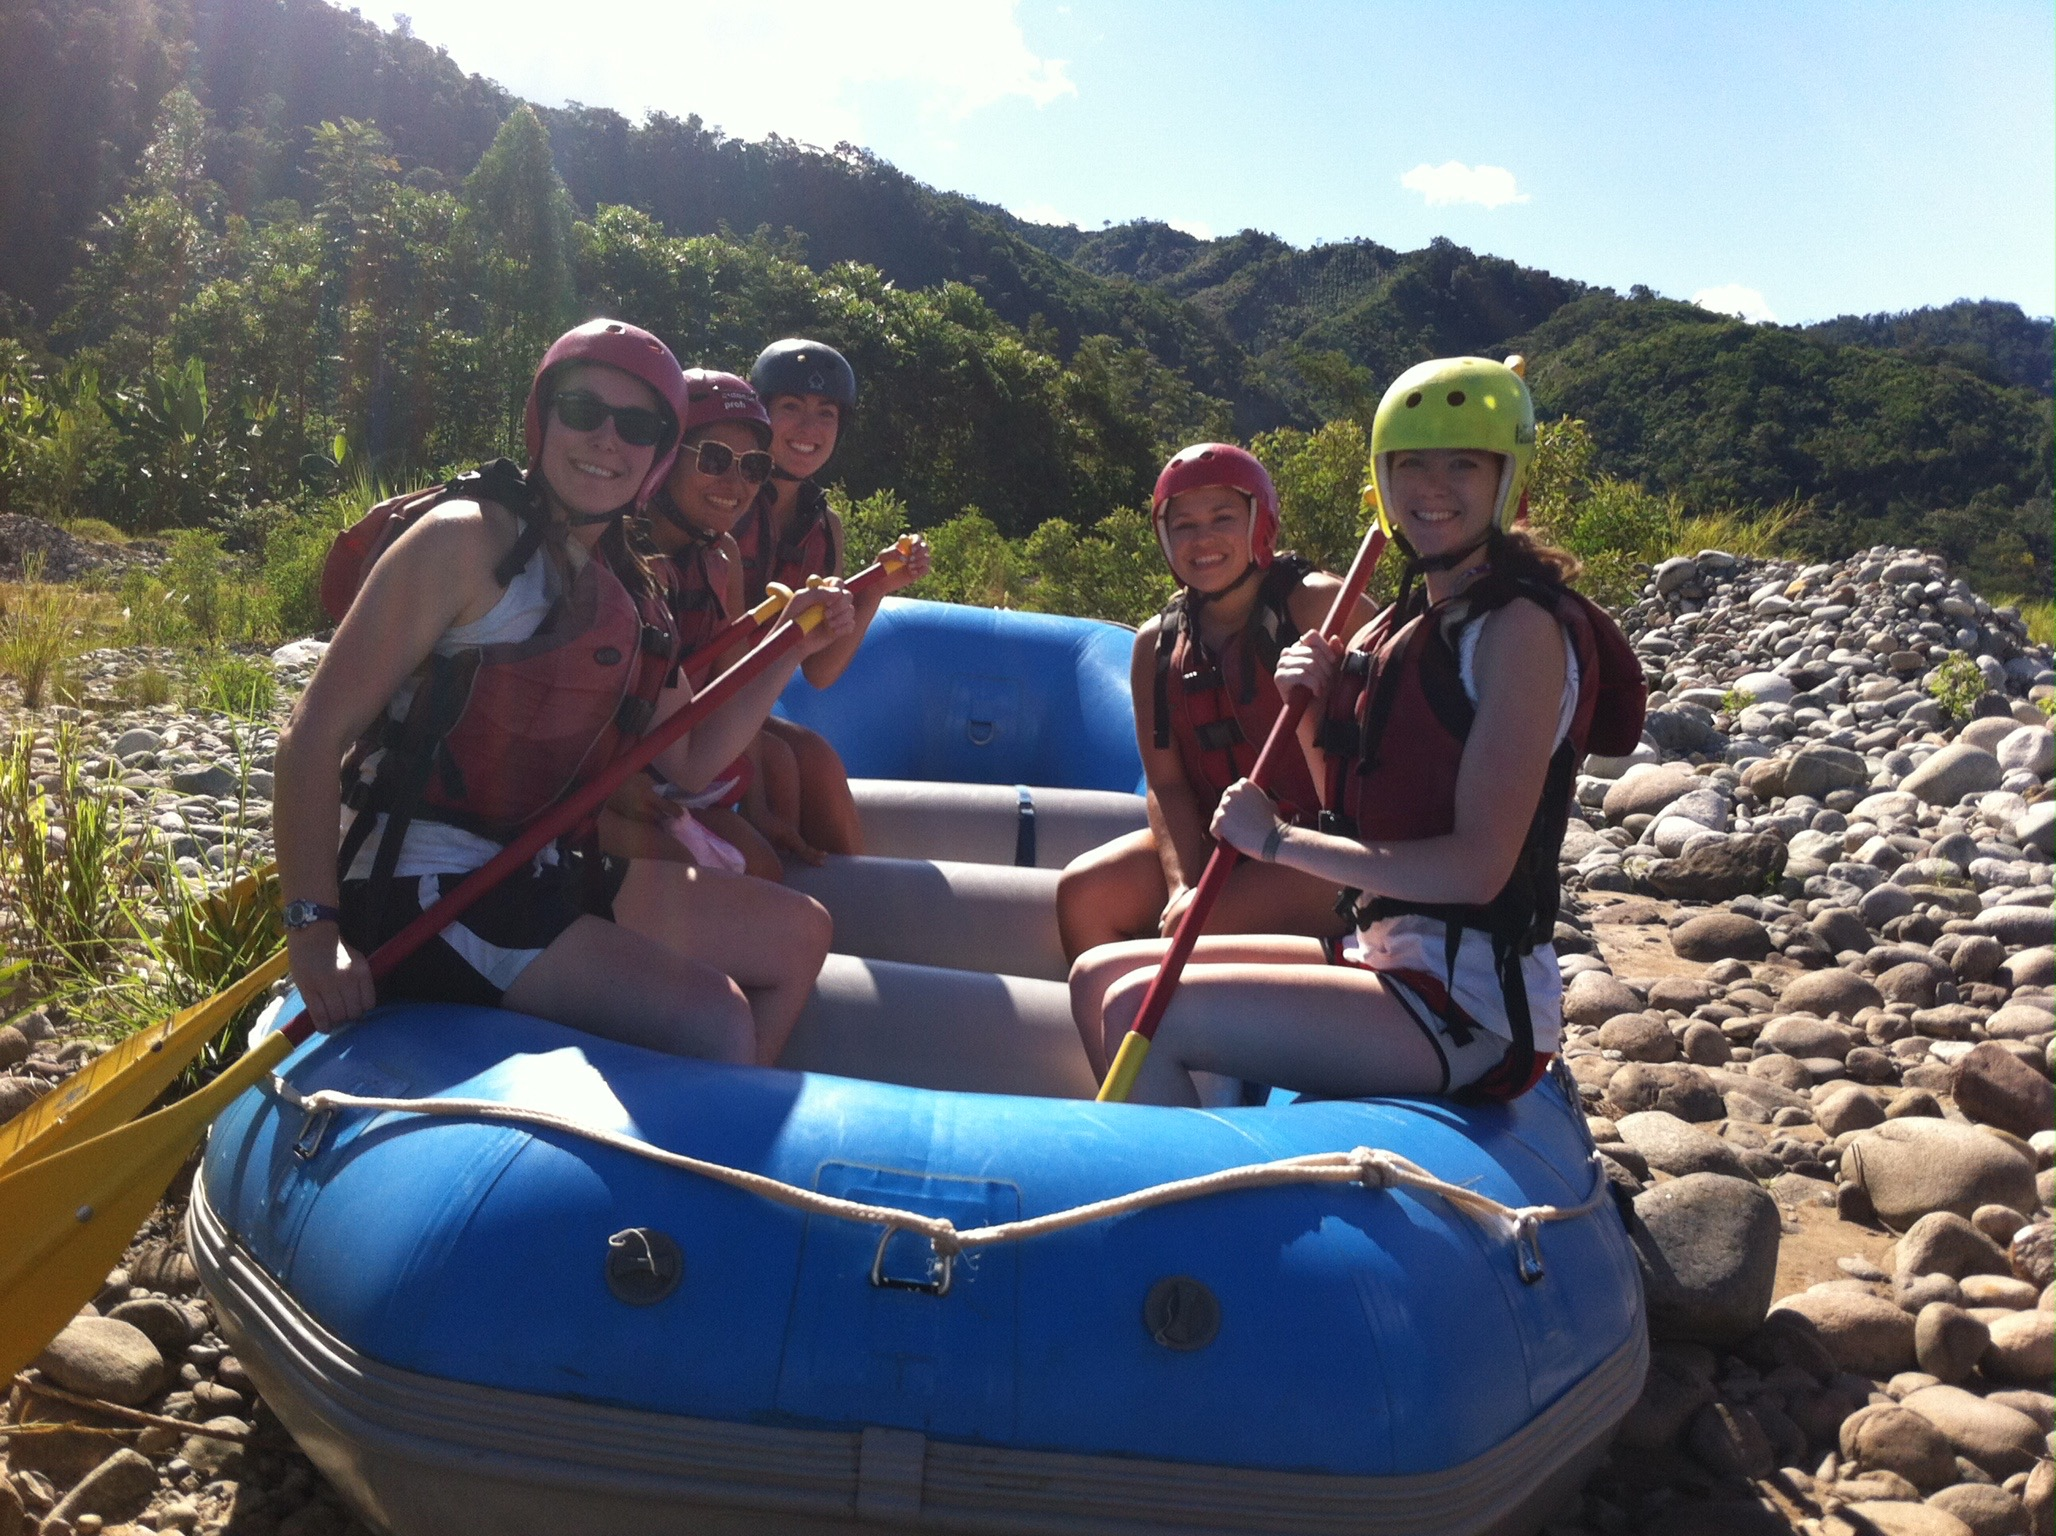 Rafting during a weekend excursion! Don't worry, they made it to the river :)